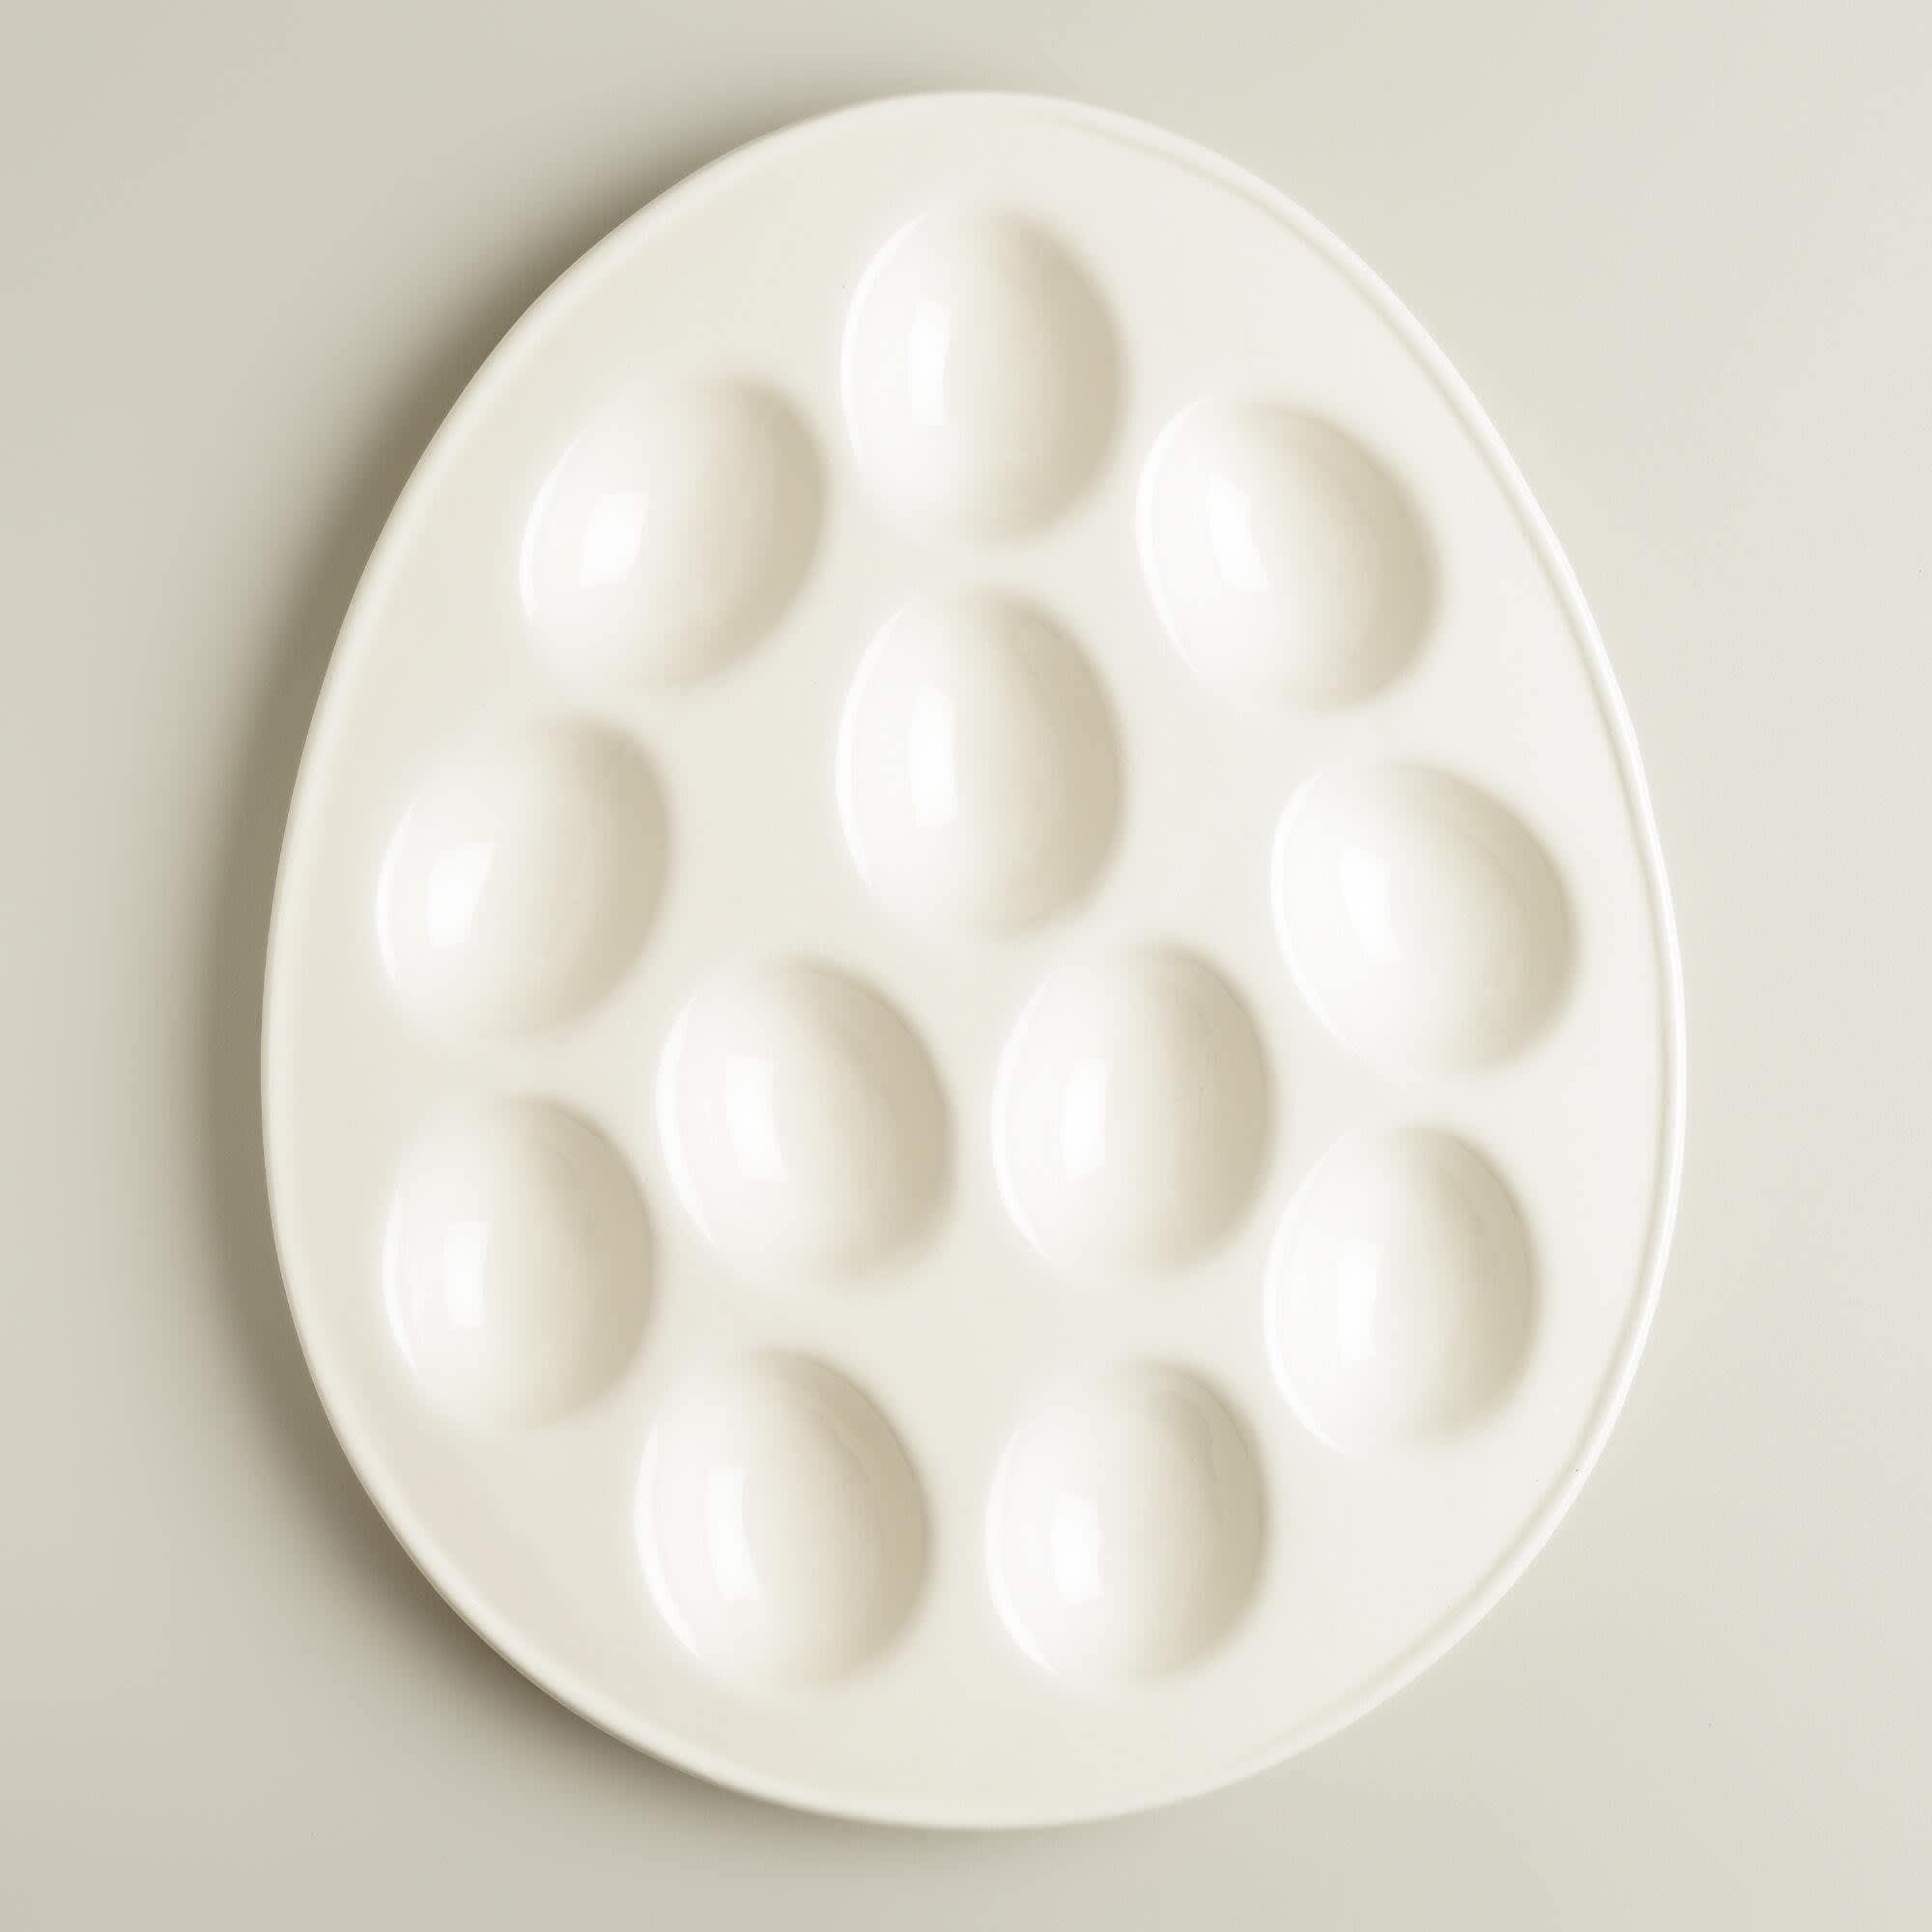 11 Egg-Shaped Kitchen & Dining Goods for Easter: gallery image 9